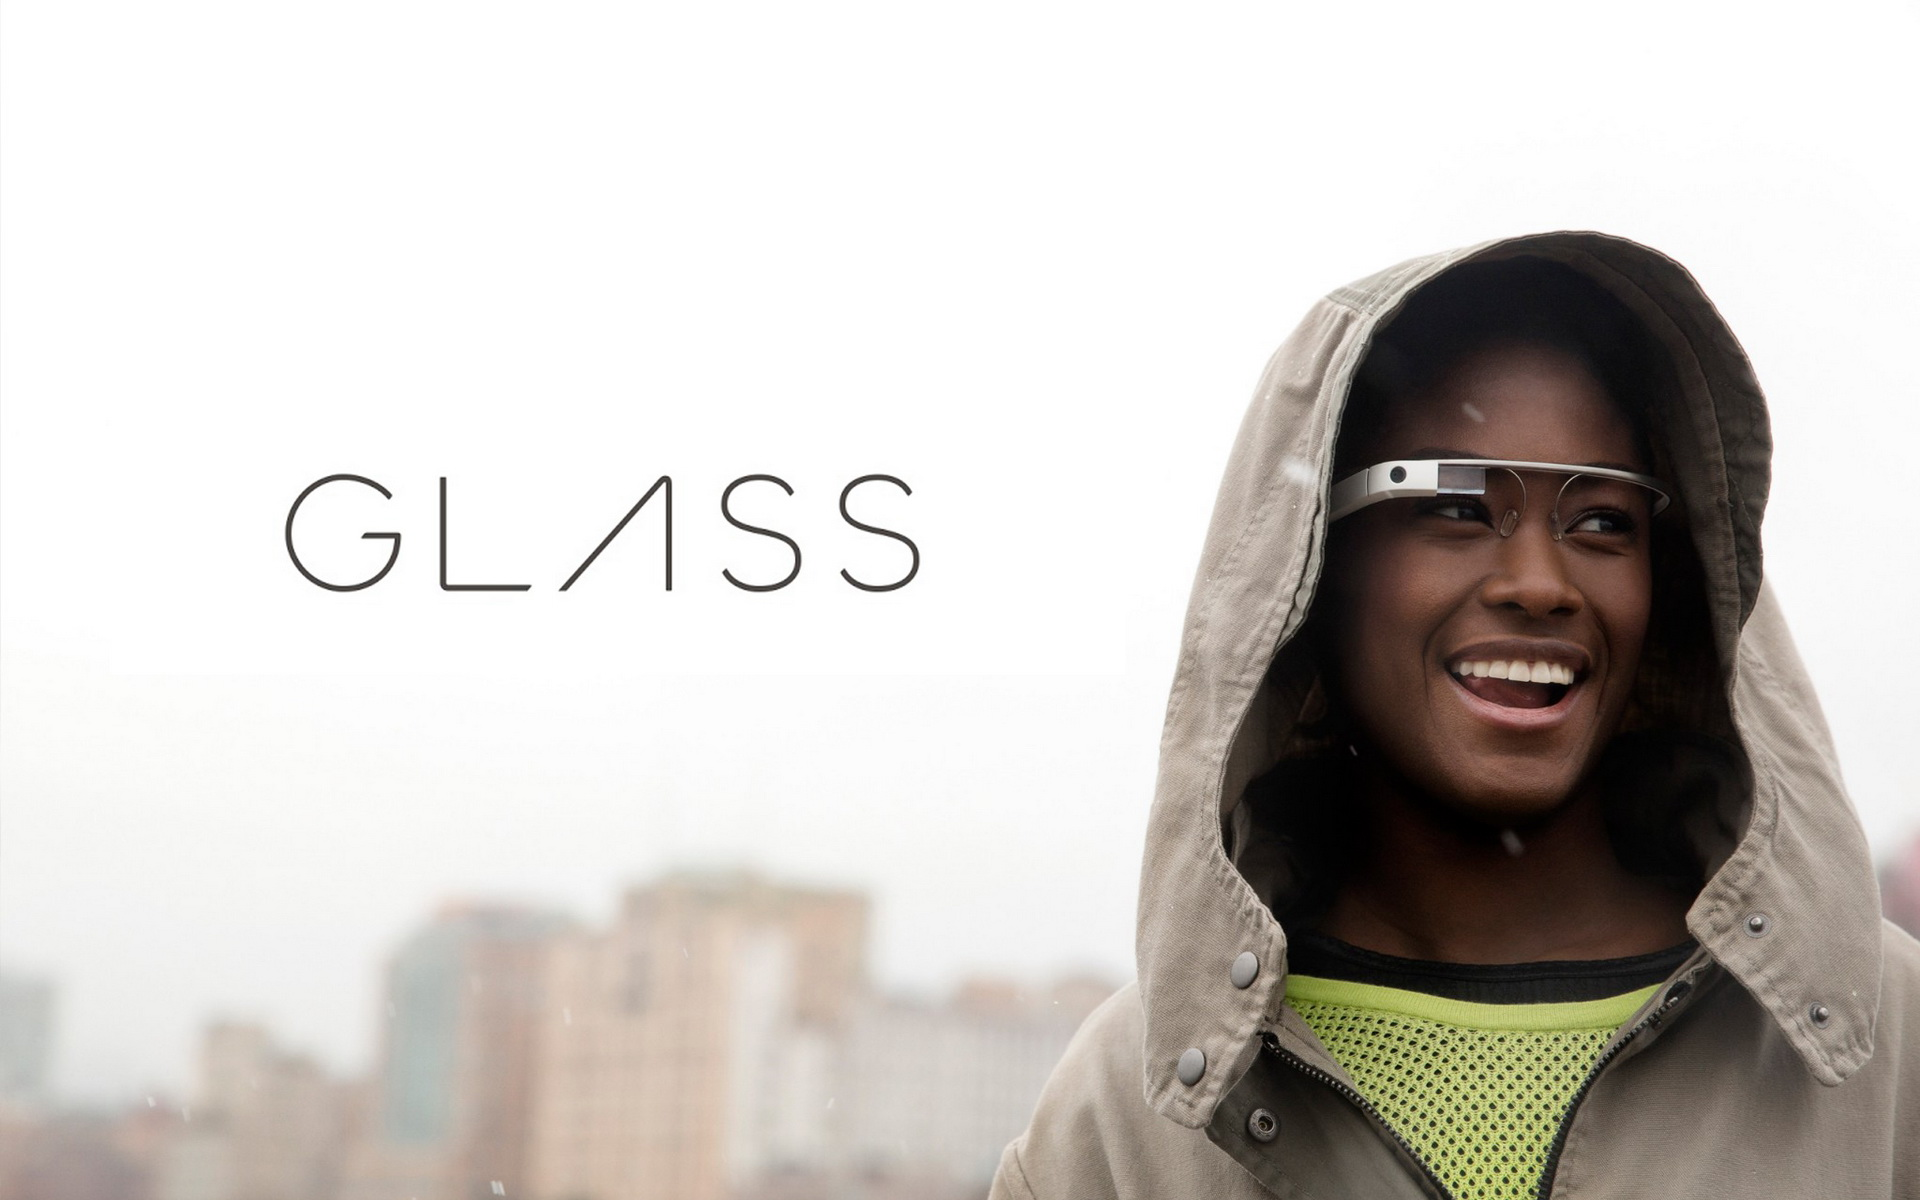 Google Glass devices rolling off the production line | e-News®